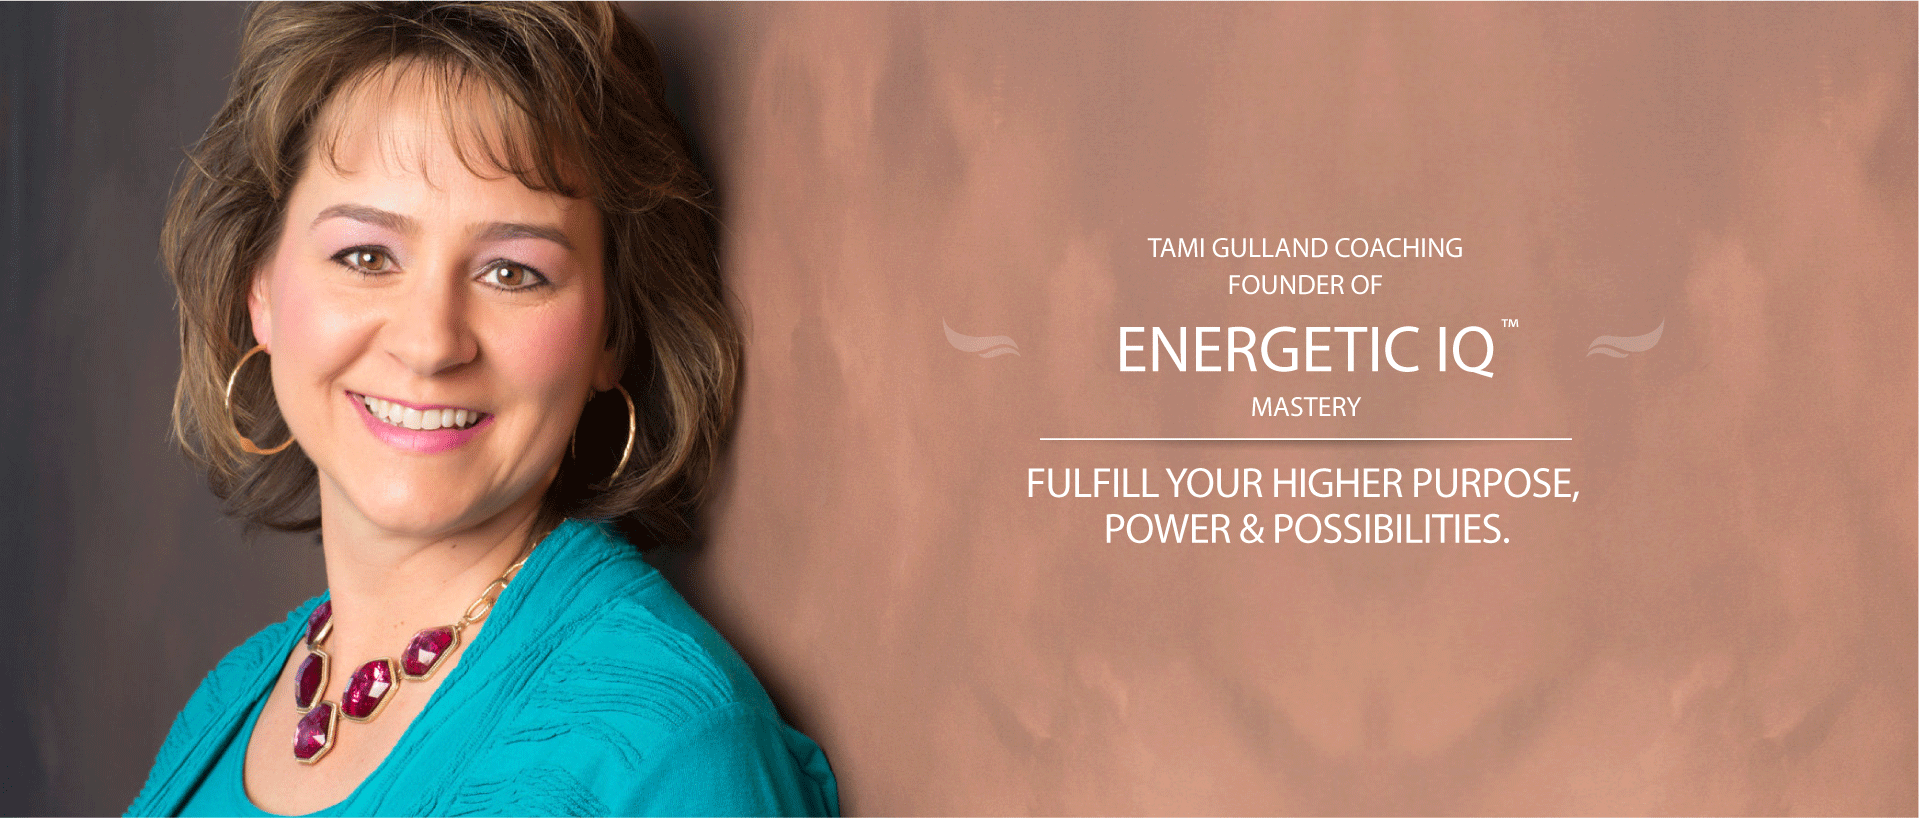 Tami Guilland with her motto and Energetic IQ mastery